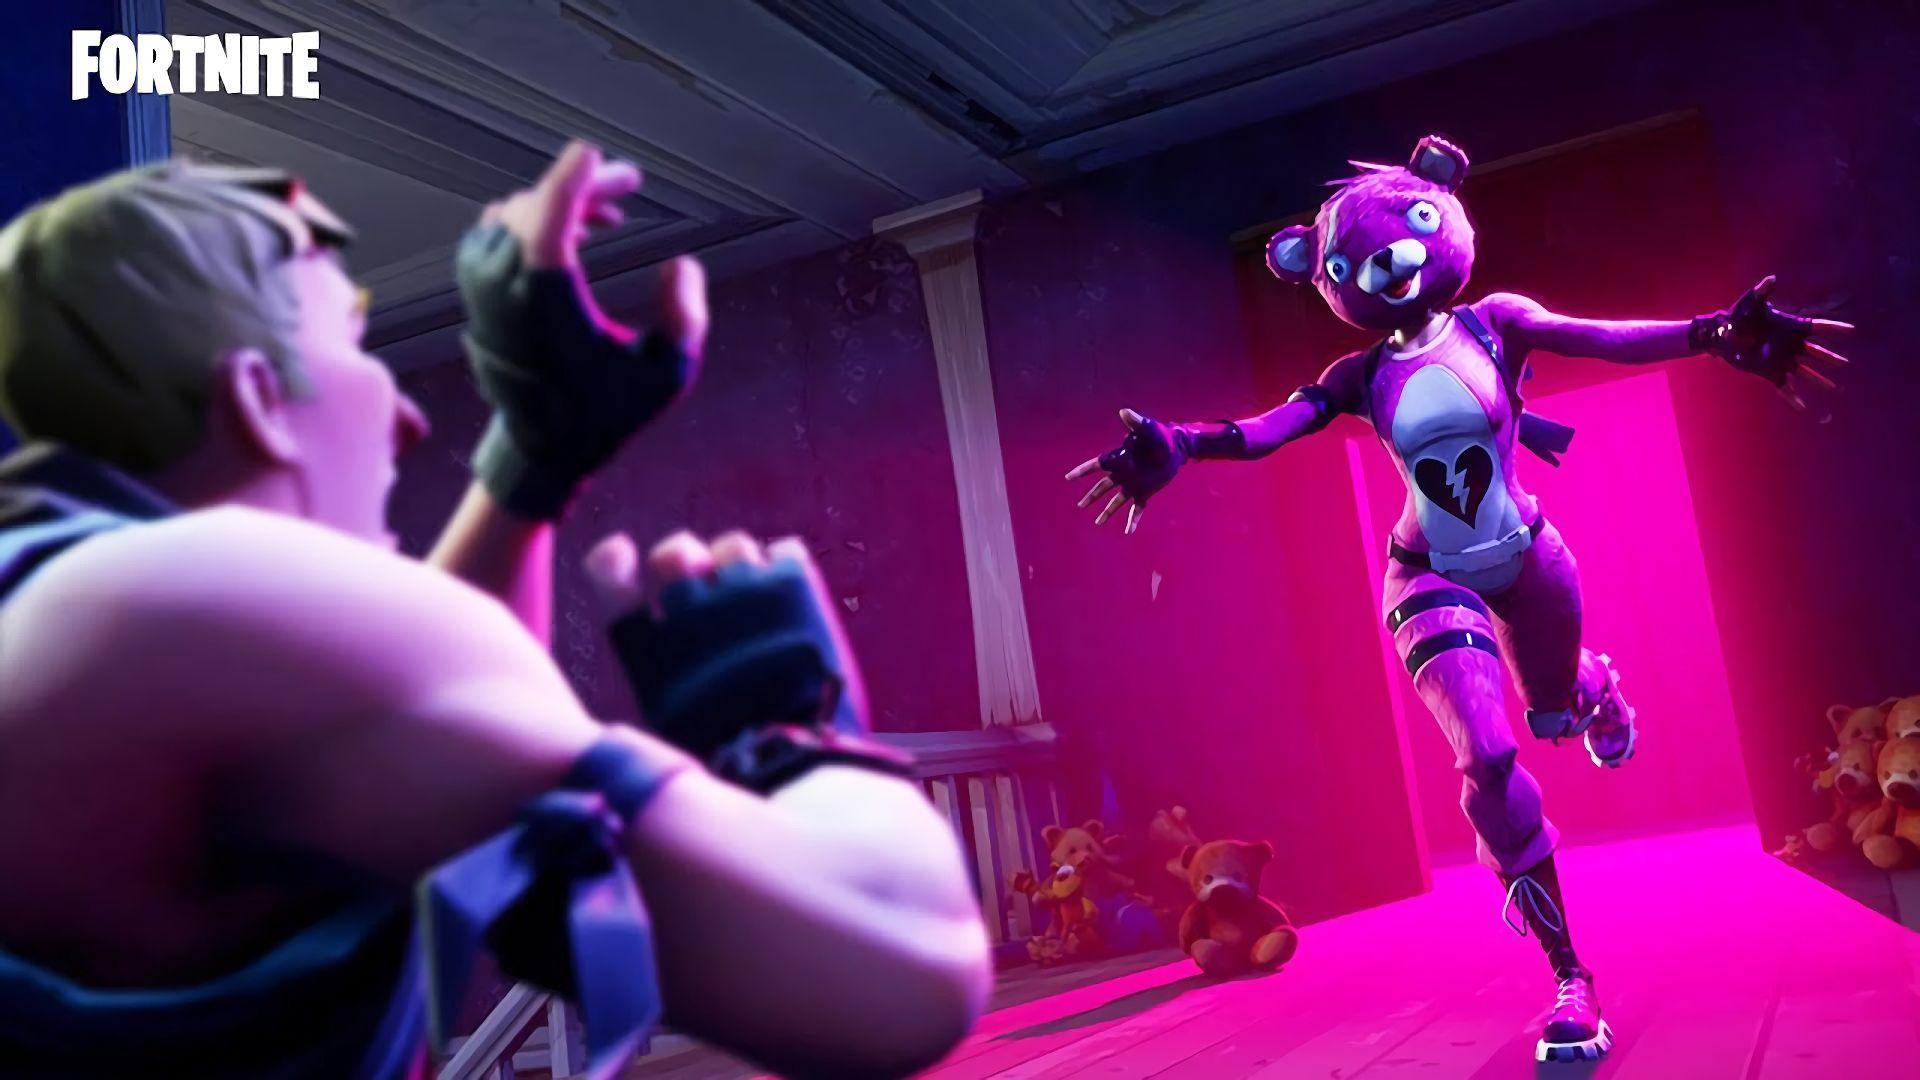 Fortnite Pink Bear Skin Wallpaper 63893 1920x1080px